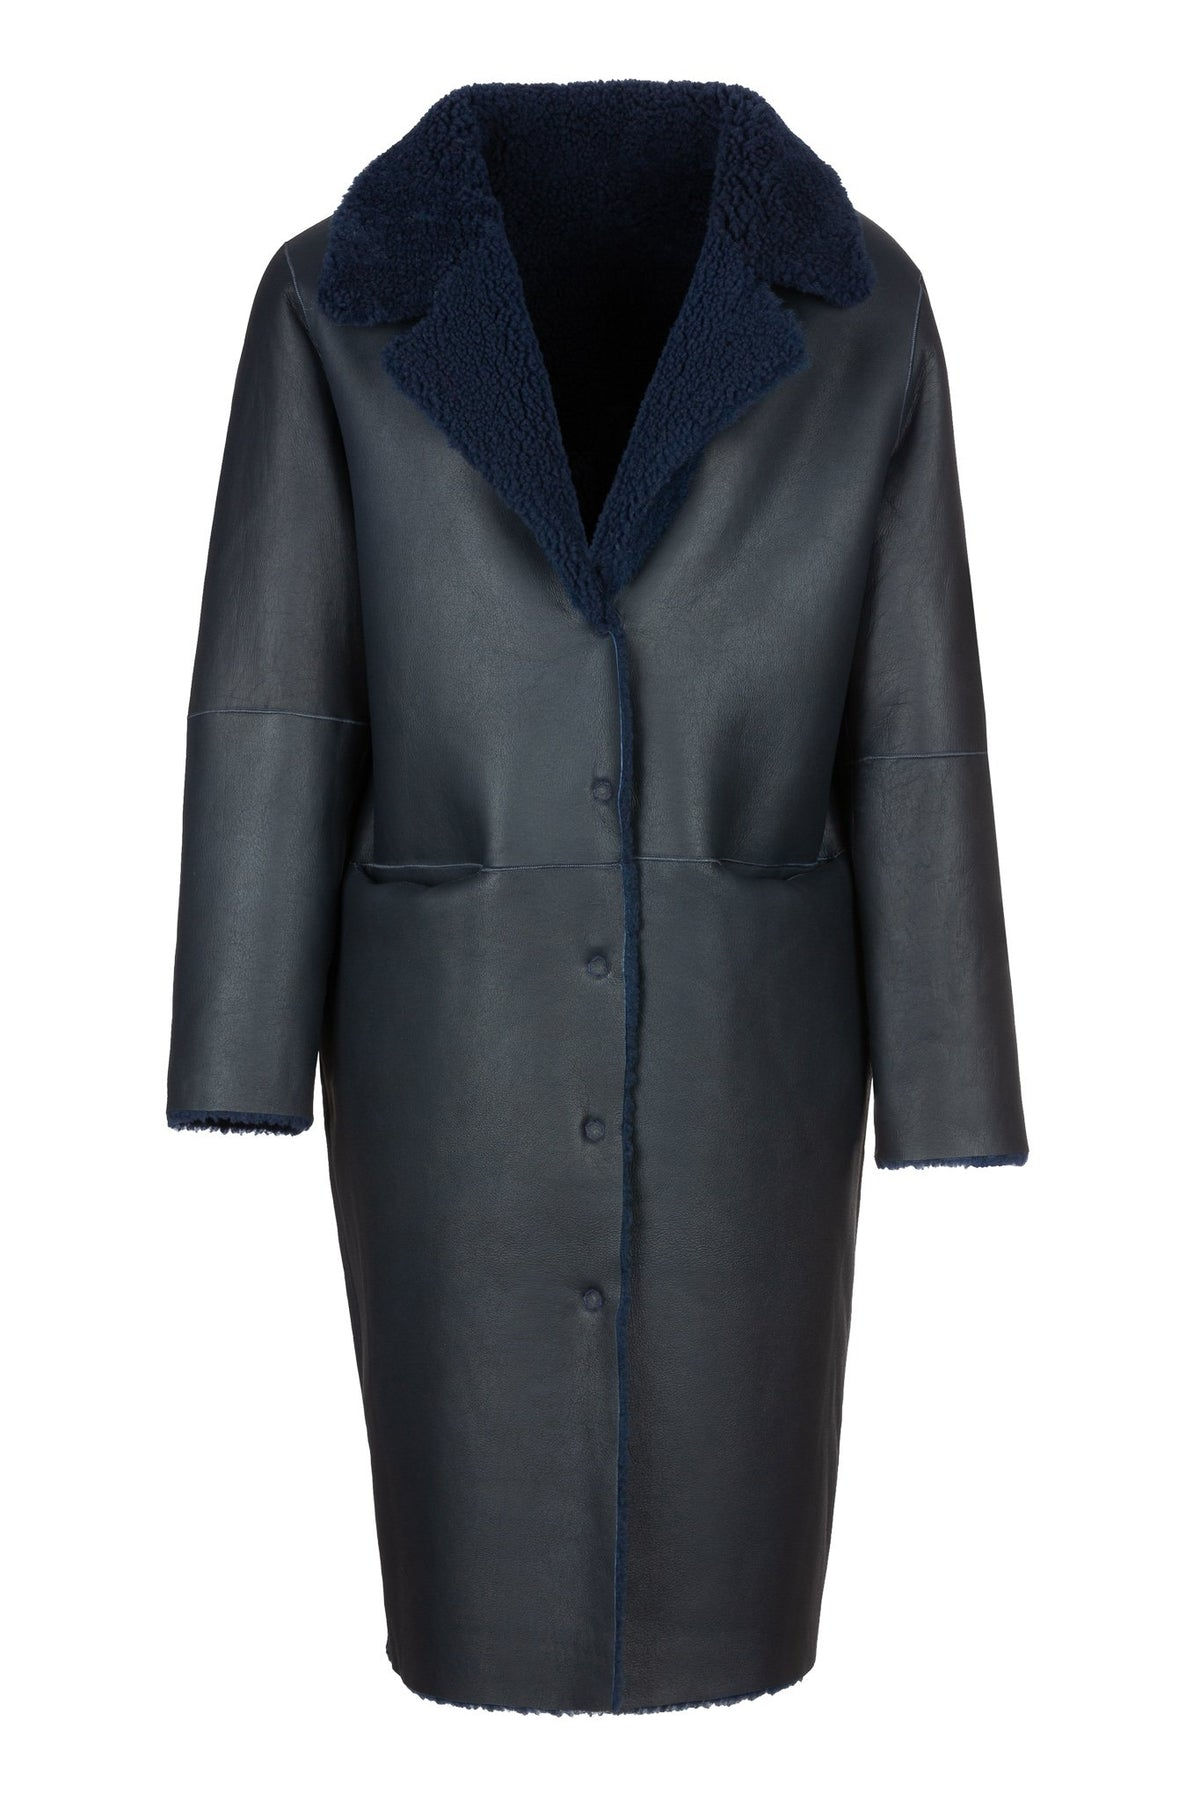 Scene | Coat | Bright Navy